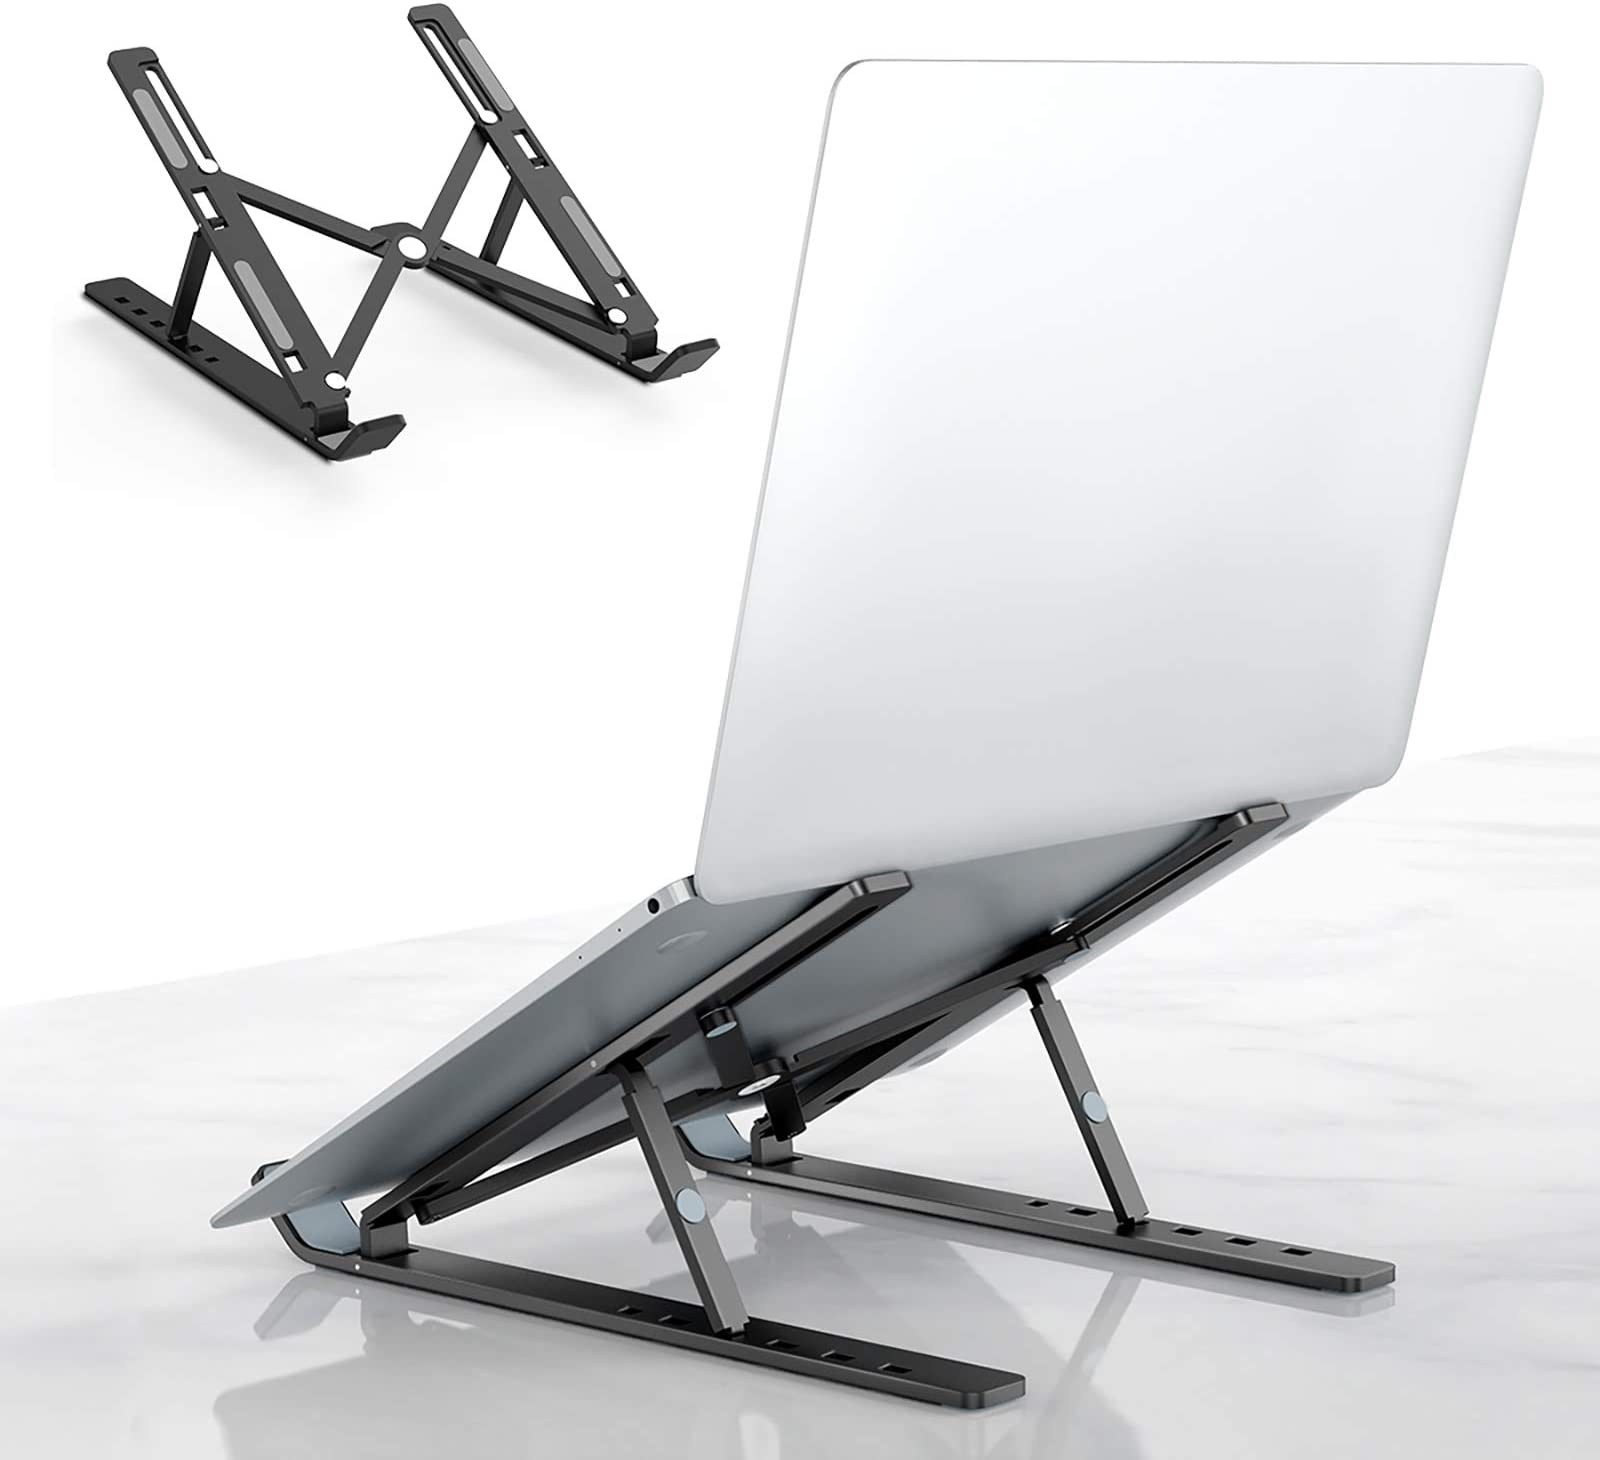 """Laptop Tablet Stand, Universal Lightweight Adjustable Aluminum Laptop Computer Stand, Ergonomic Foldable Portable Desktop Tray Cooling Holder Compatible with Dell, HP and 10""""-15.6"""" Devices (Black)"""